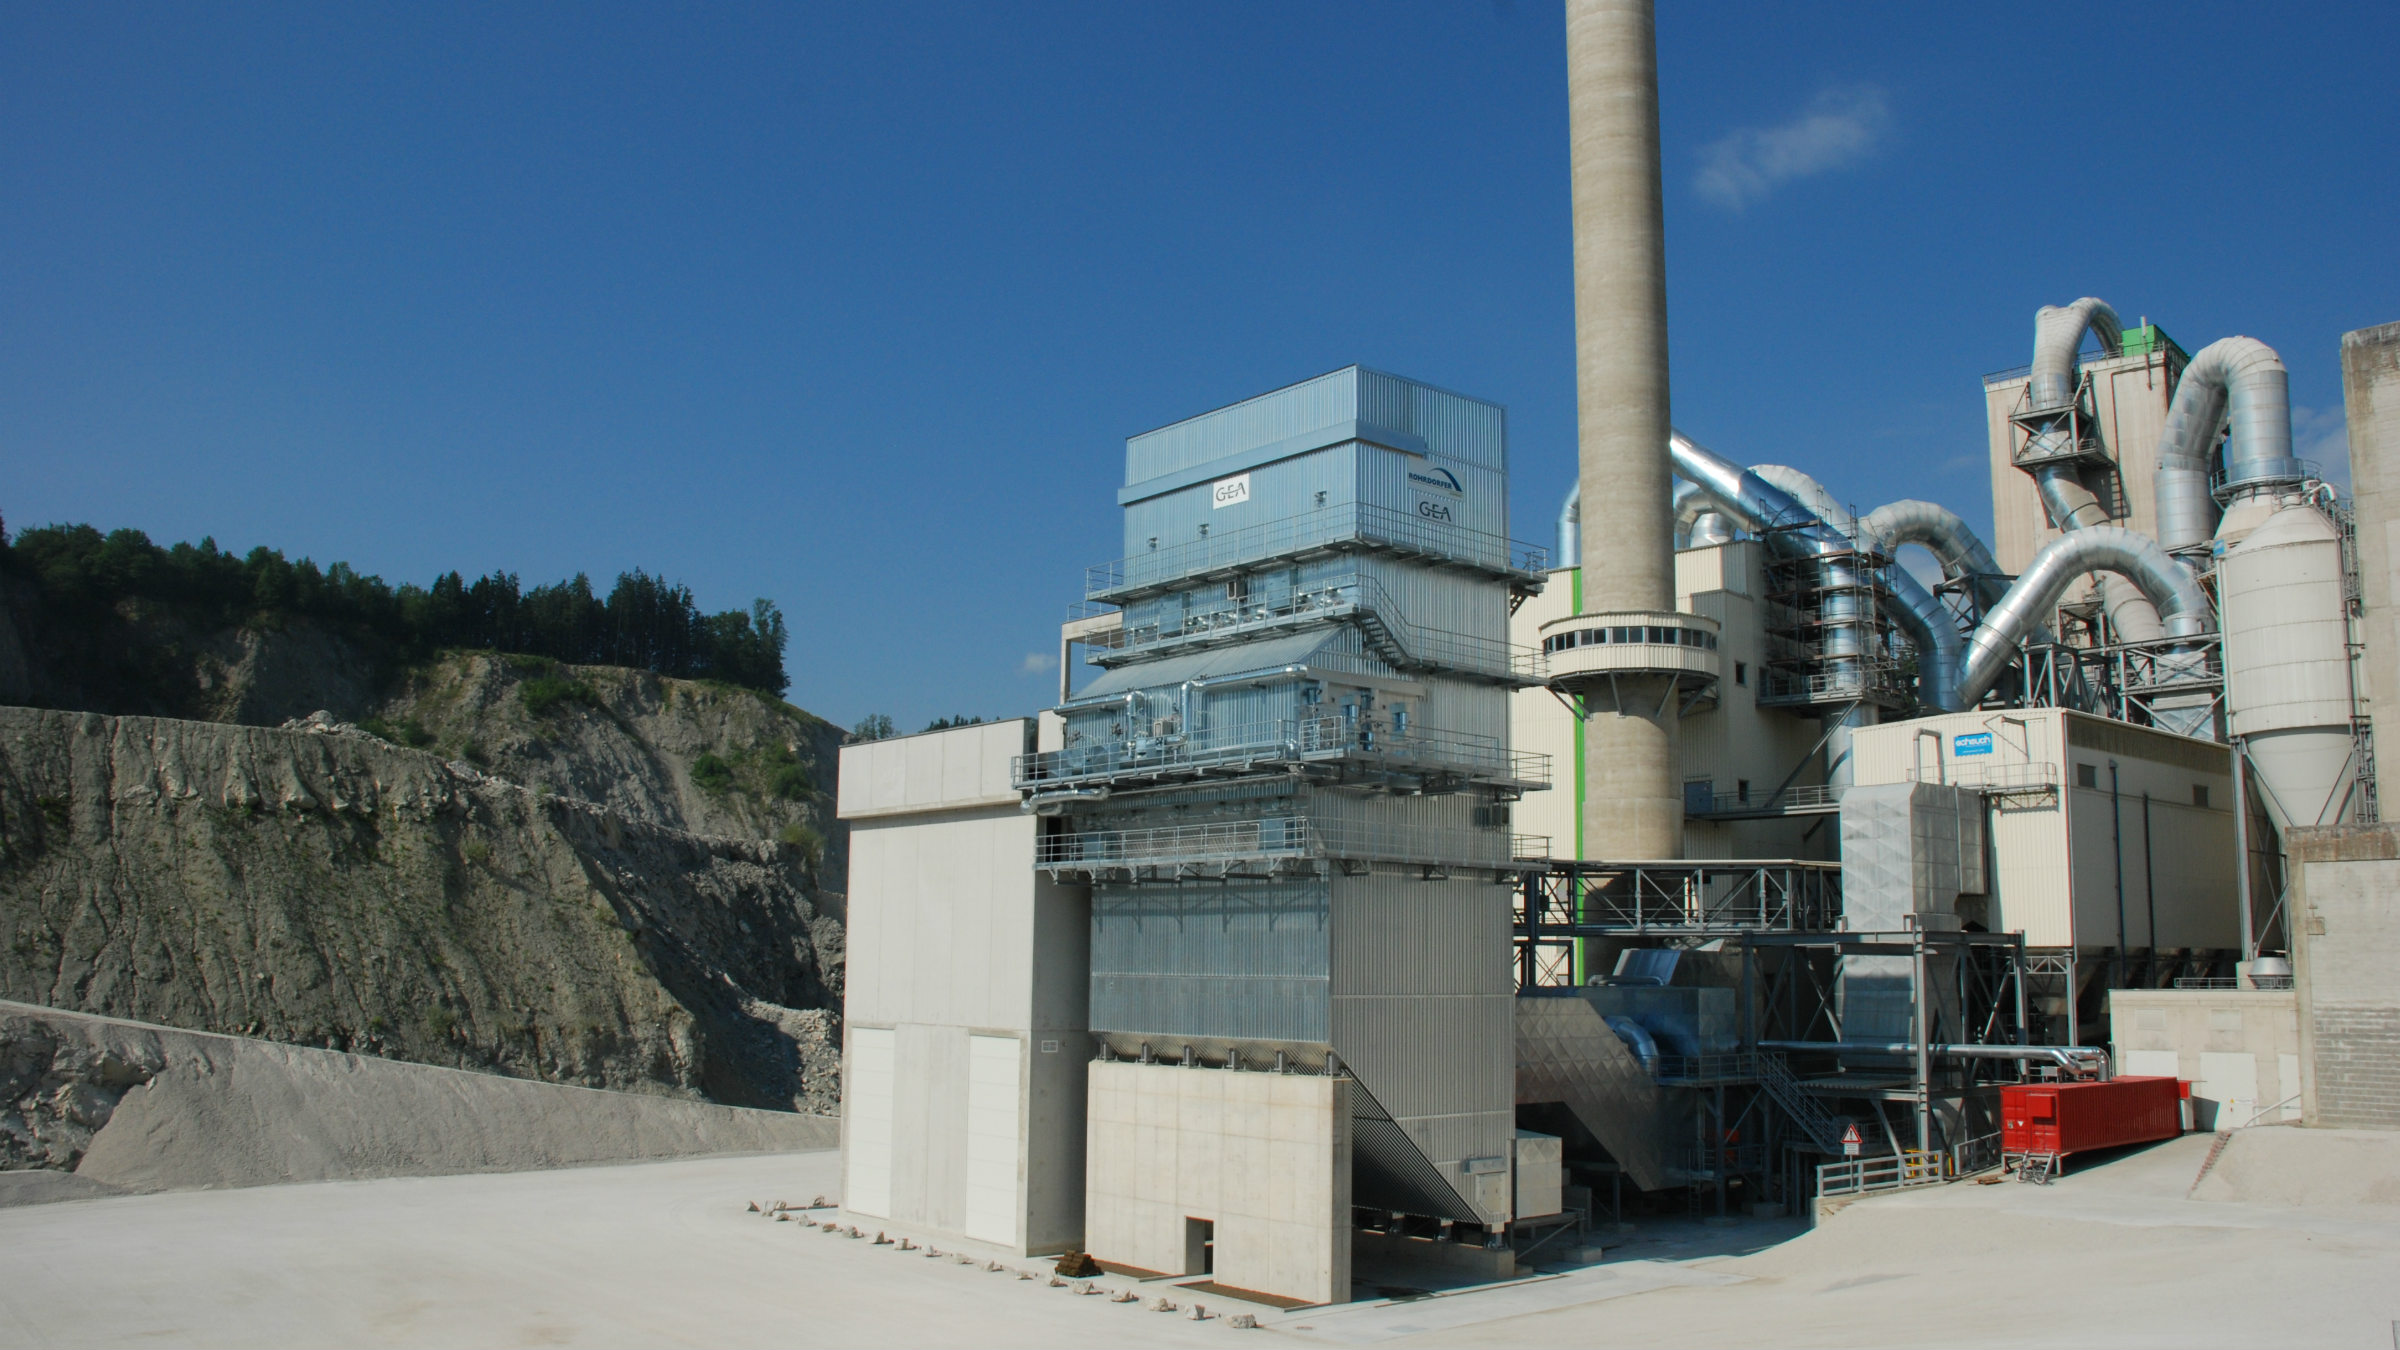 An example of a GEA flue gas treatment plant for nitrogen oxides. (Photo: GEA)